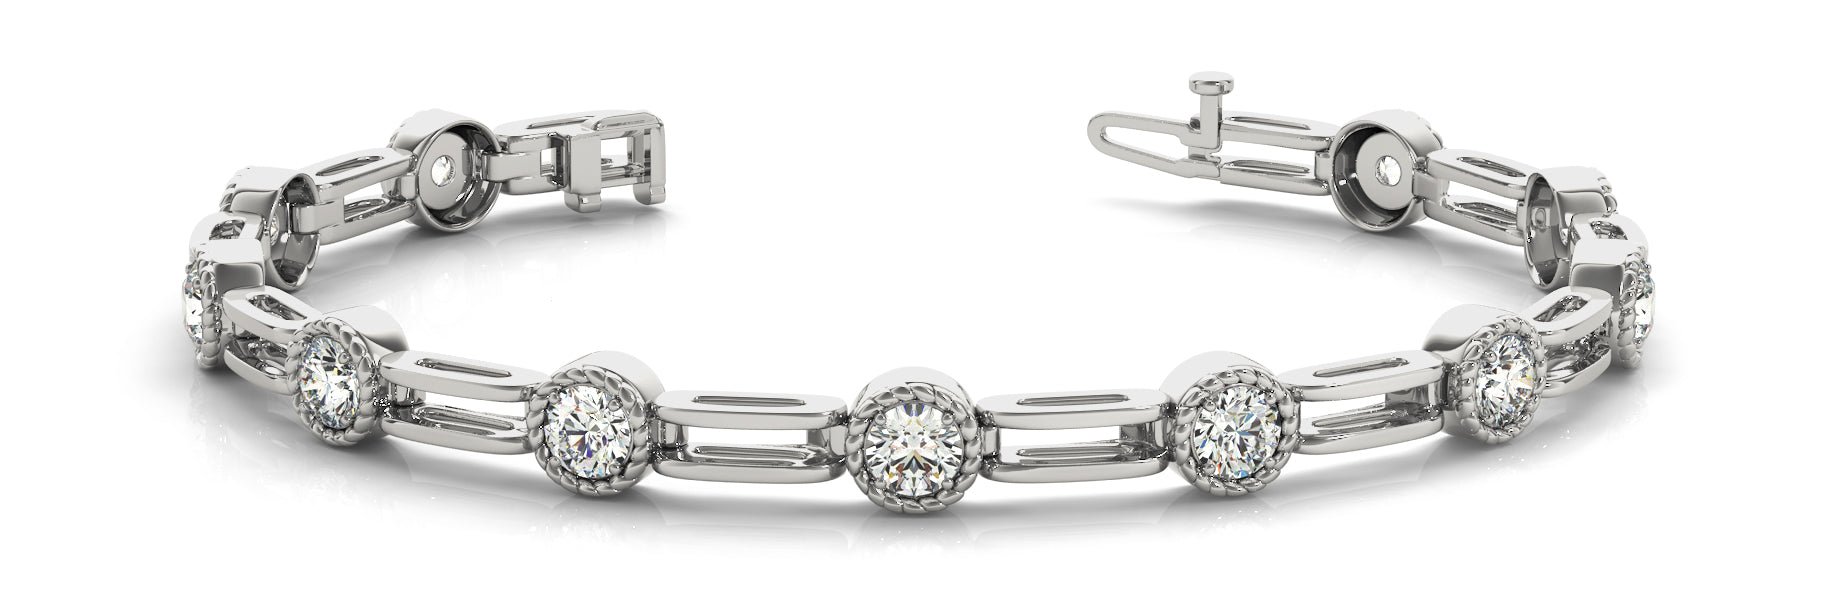 Fancy Diamond Bracelet Ladies 0.51ct tw - 14kt White Gold